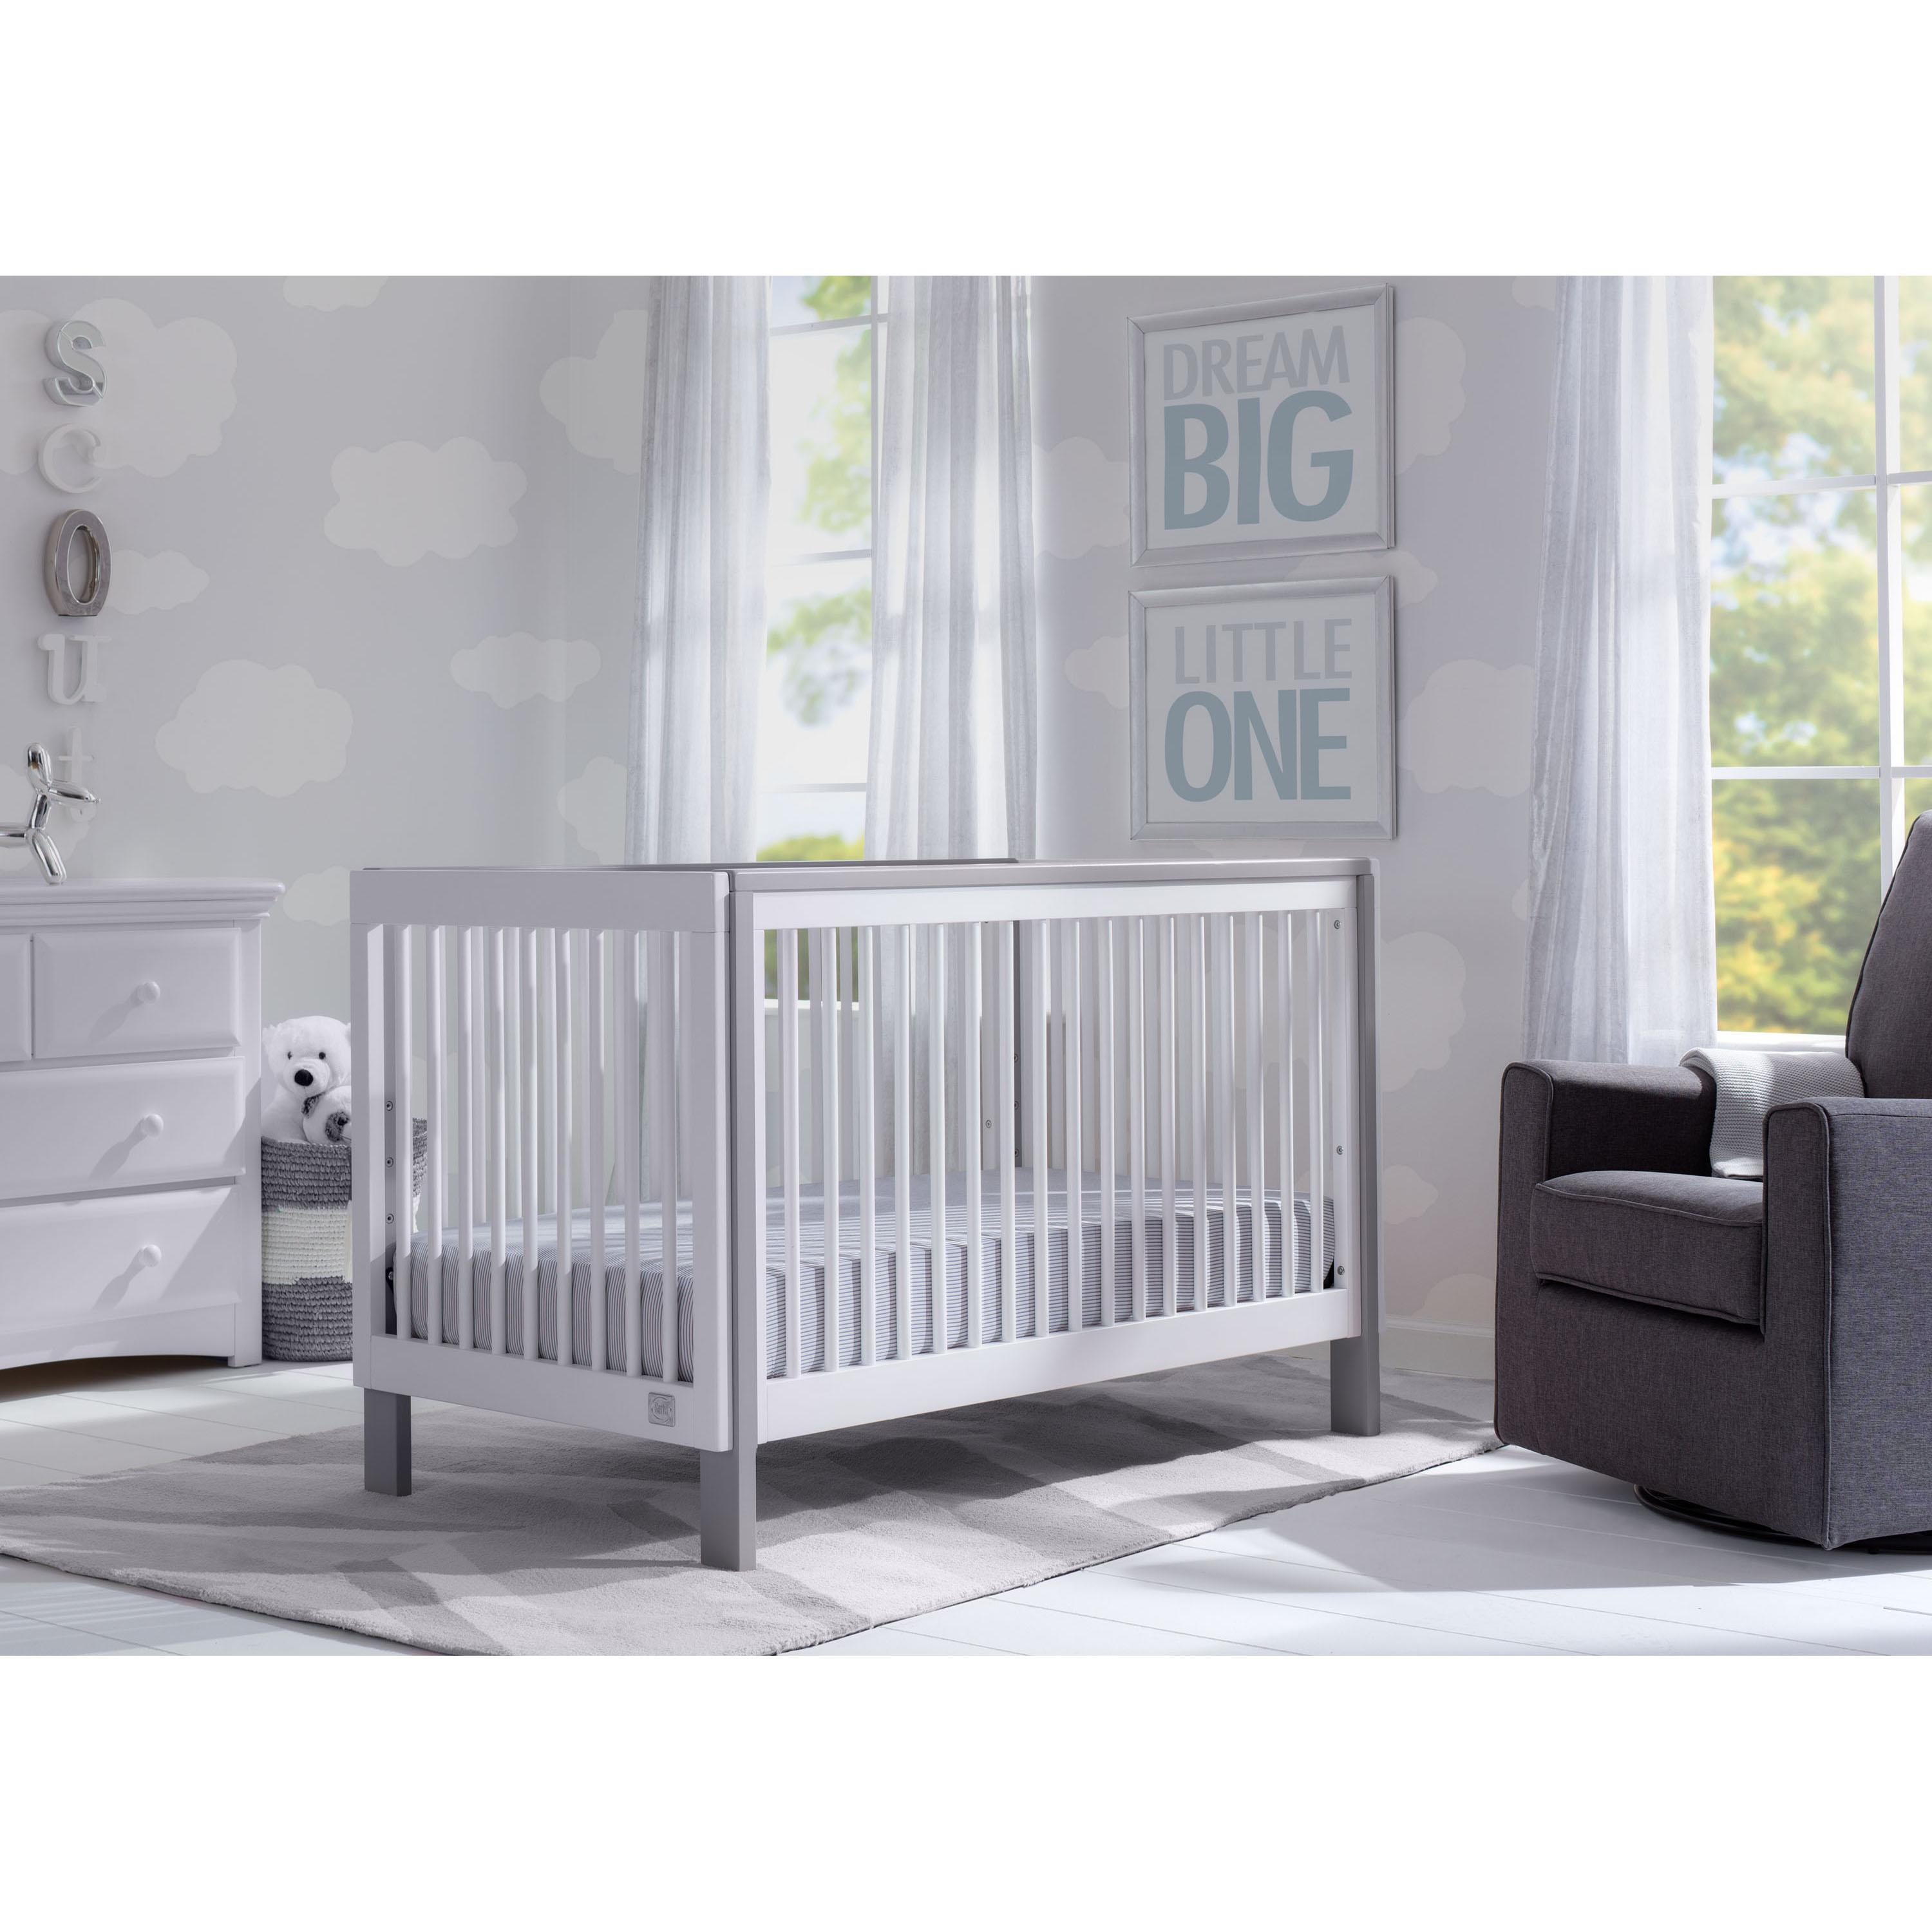 cribs creative crib of twins dividers see view for larger l through baby ideas divider